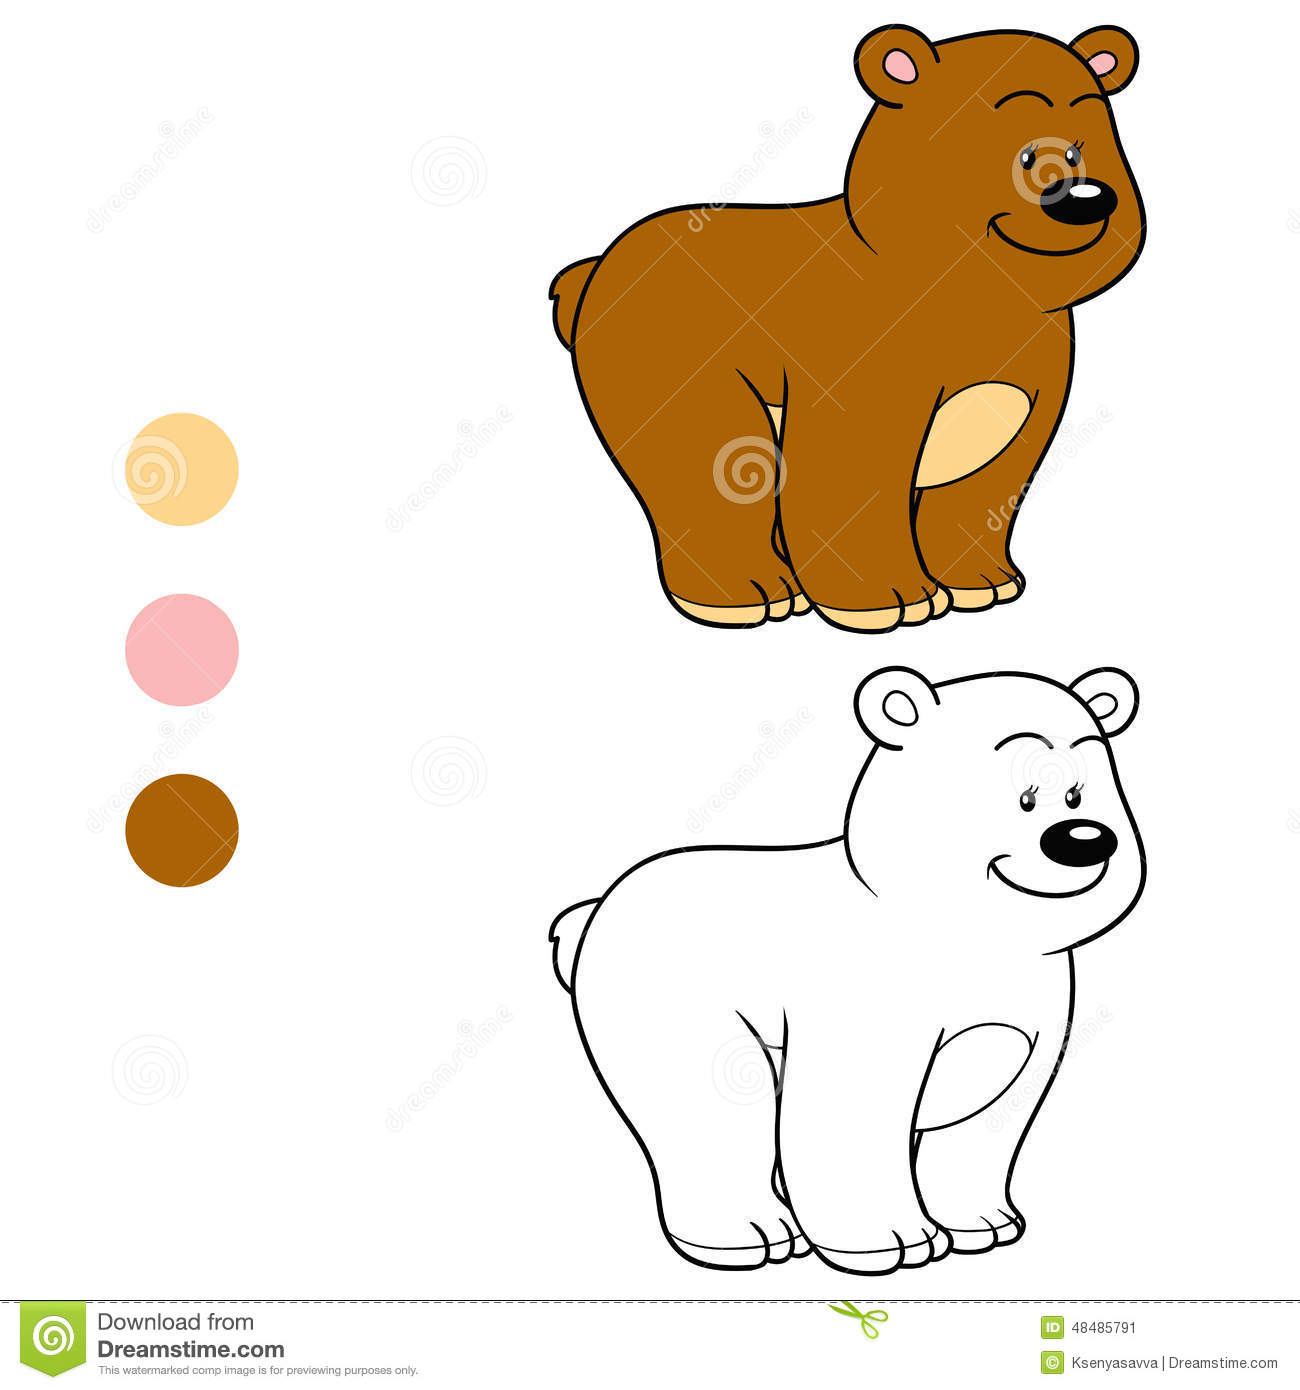 Coloring Book For Children Teddy Bear Stock Vector Illustration